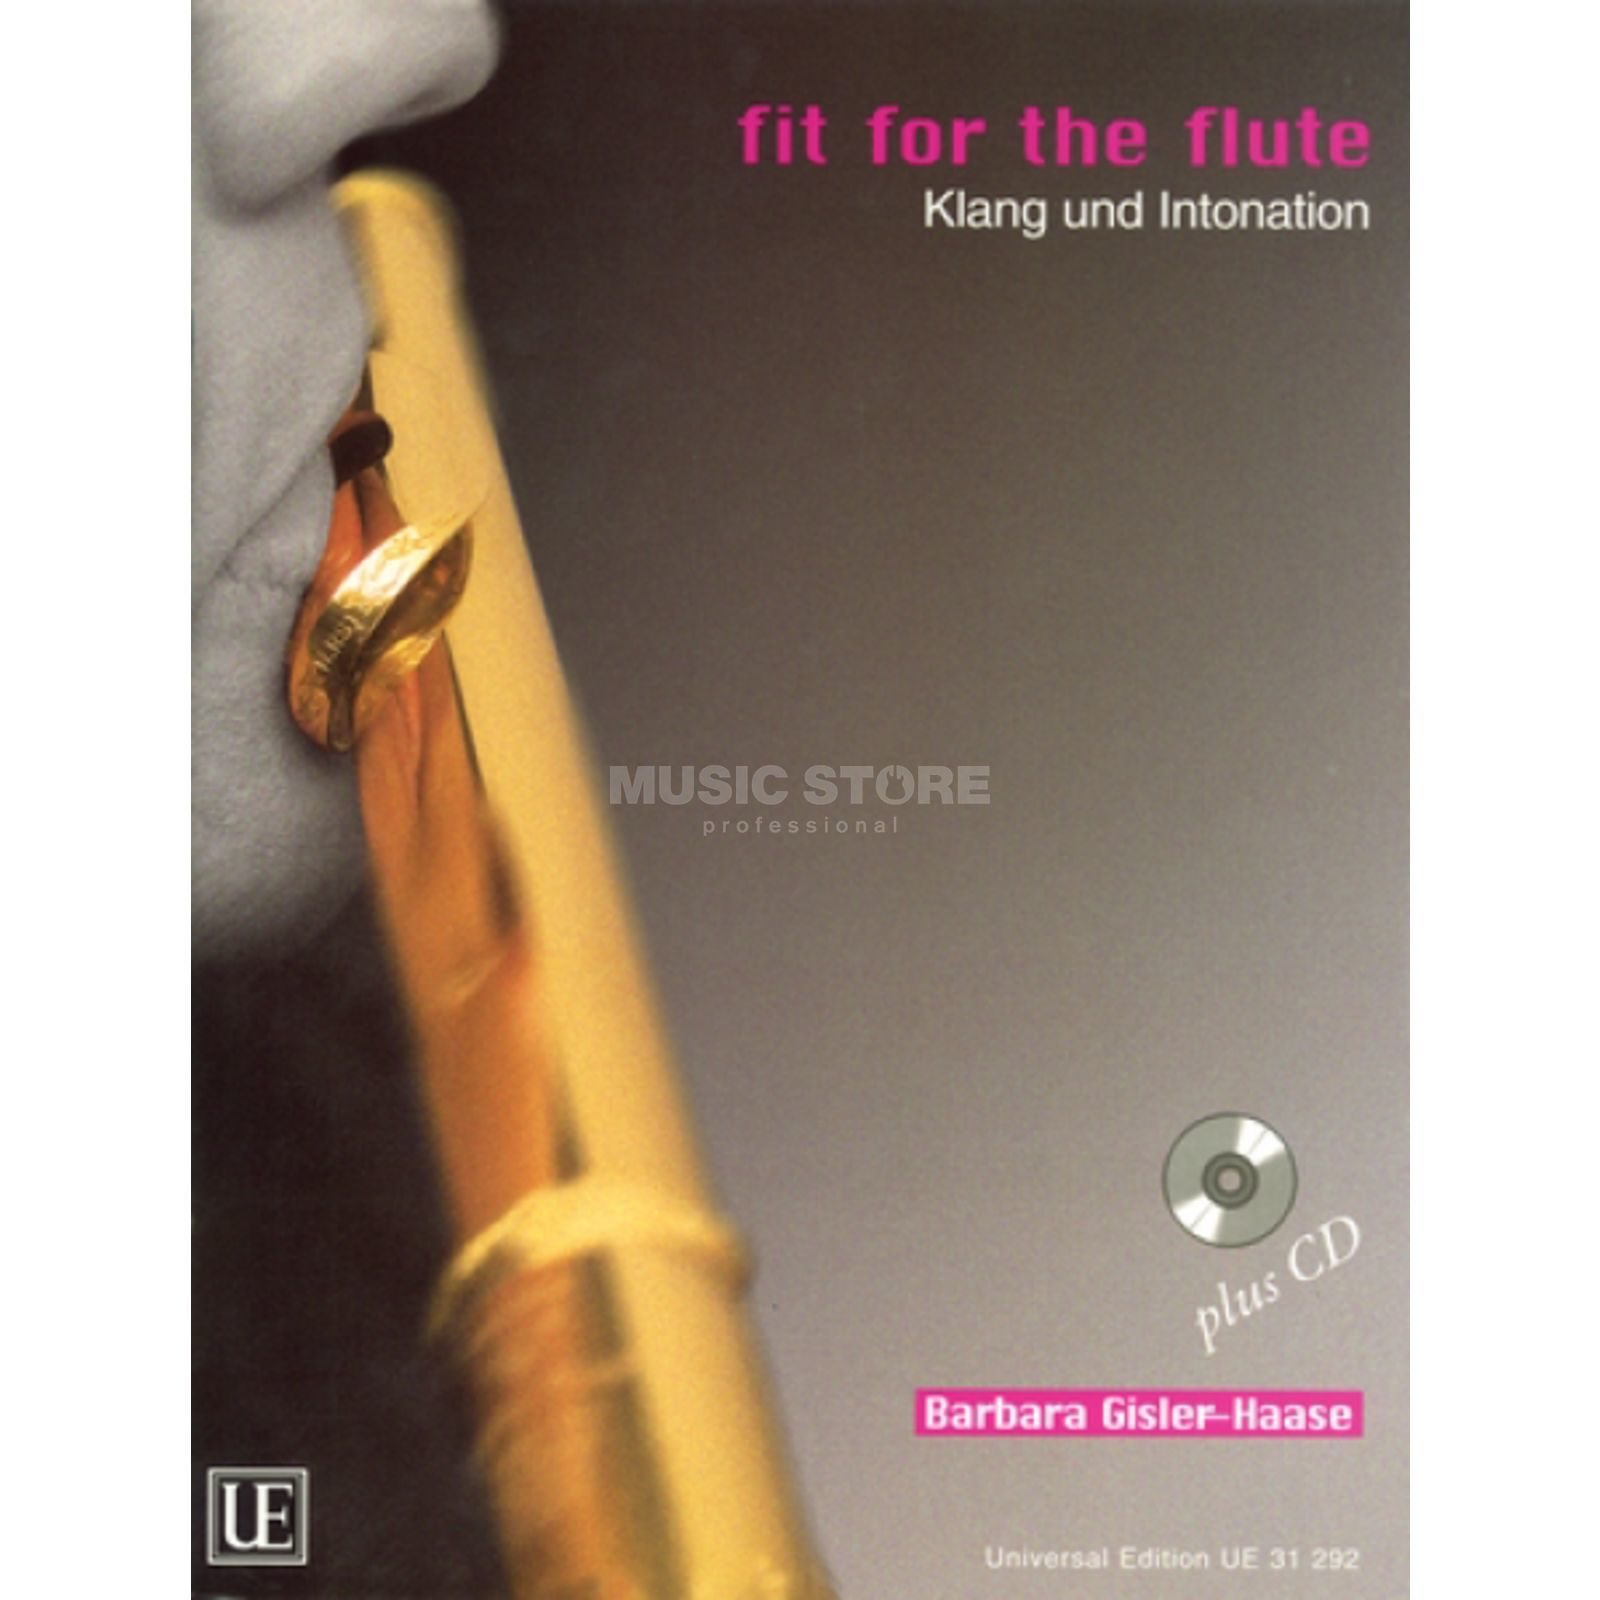 Universal Edition Fit for the Flute 2 mit CD Gisler-Haase, Querflöte Produktbillede